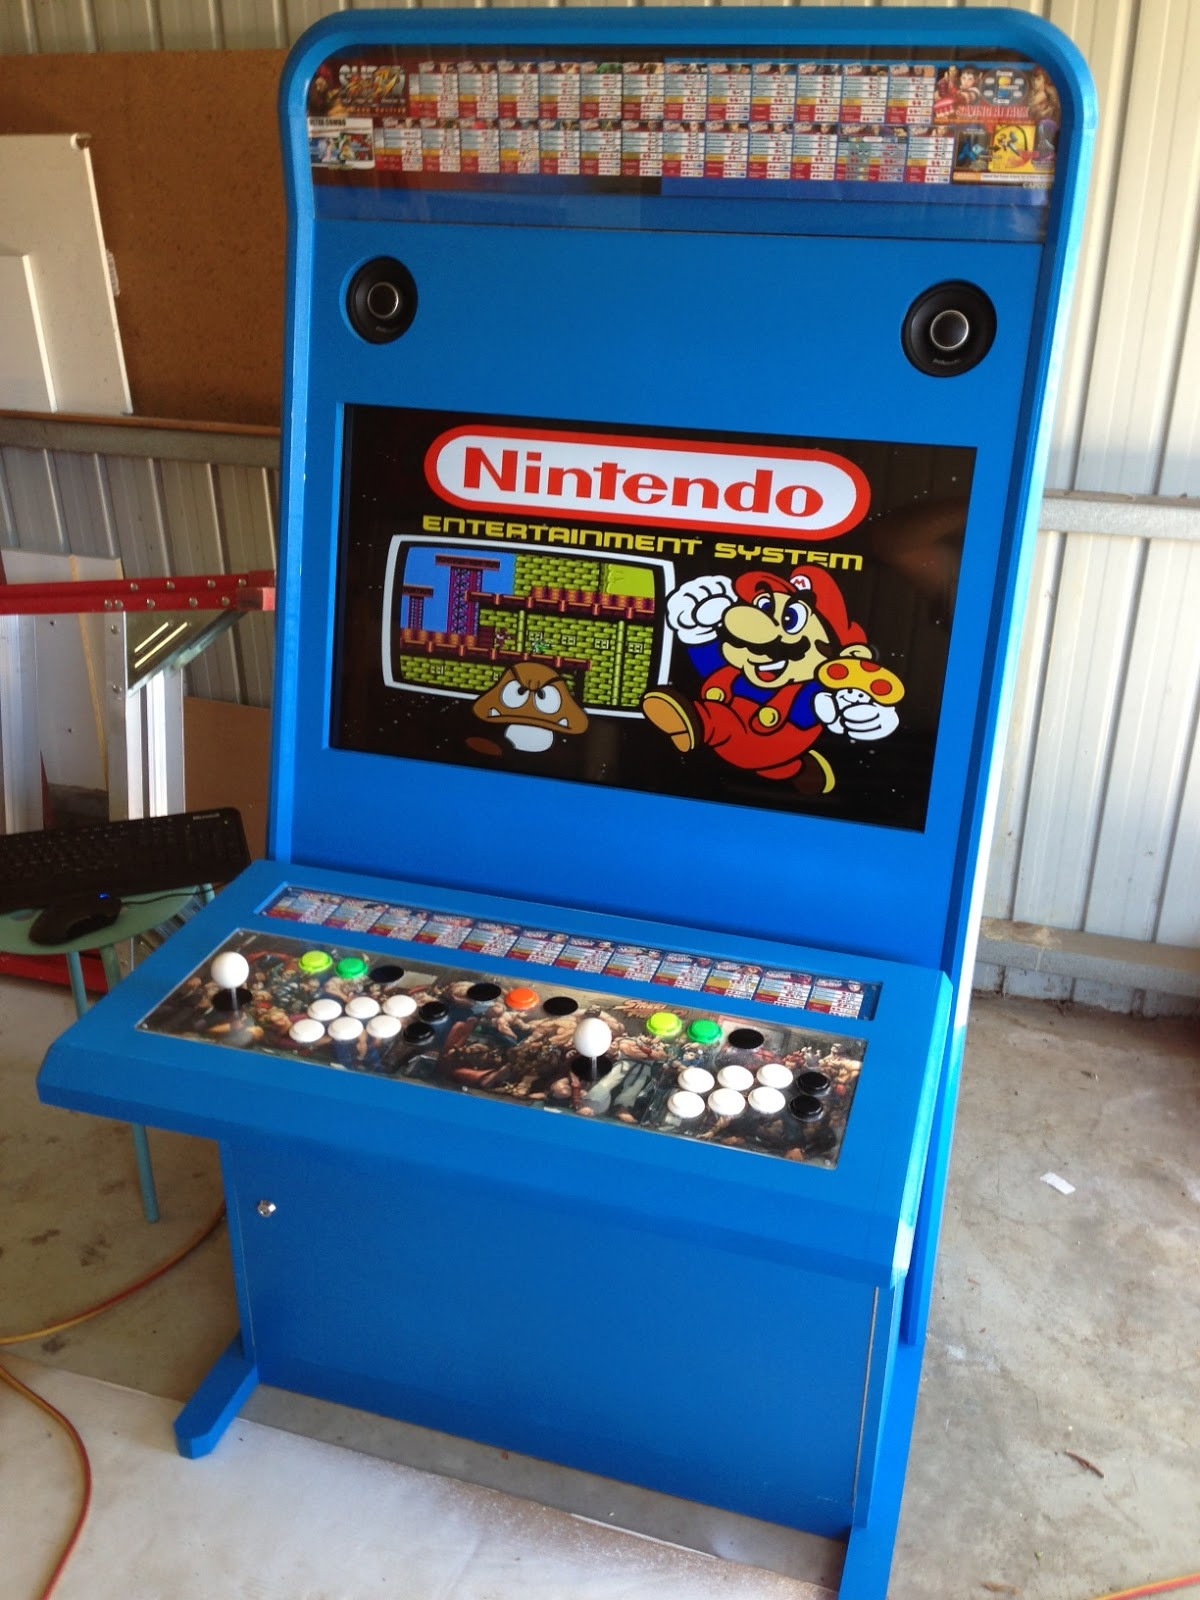 Best ideas about Mame Arcade Cabinet . Save or Pin Daniel s musings on IT Building Arcade Hyperspin Mame Now.